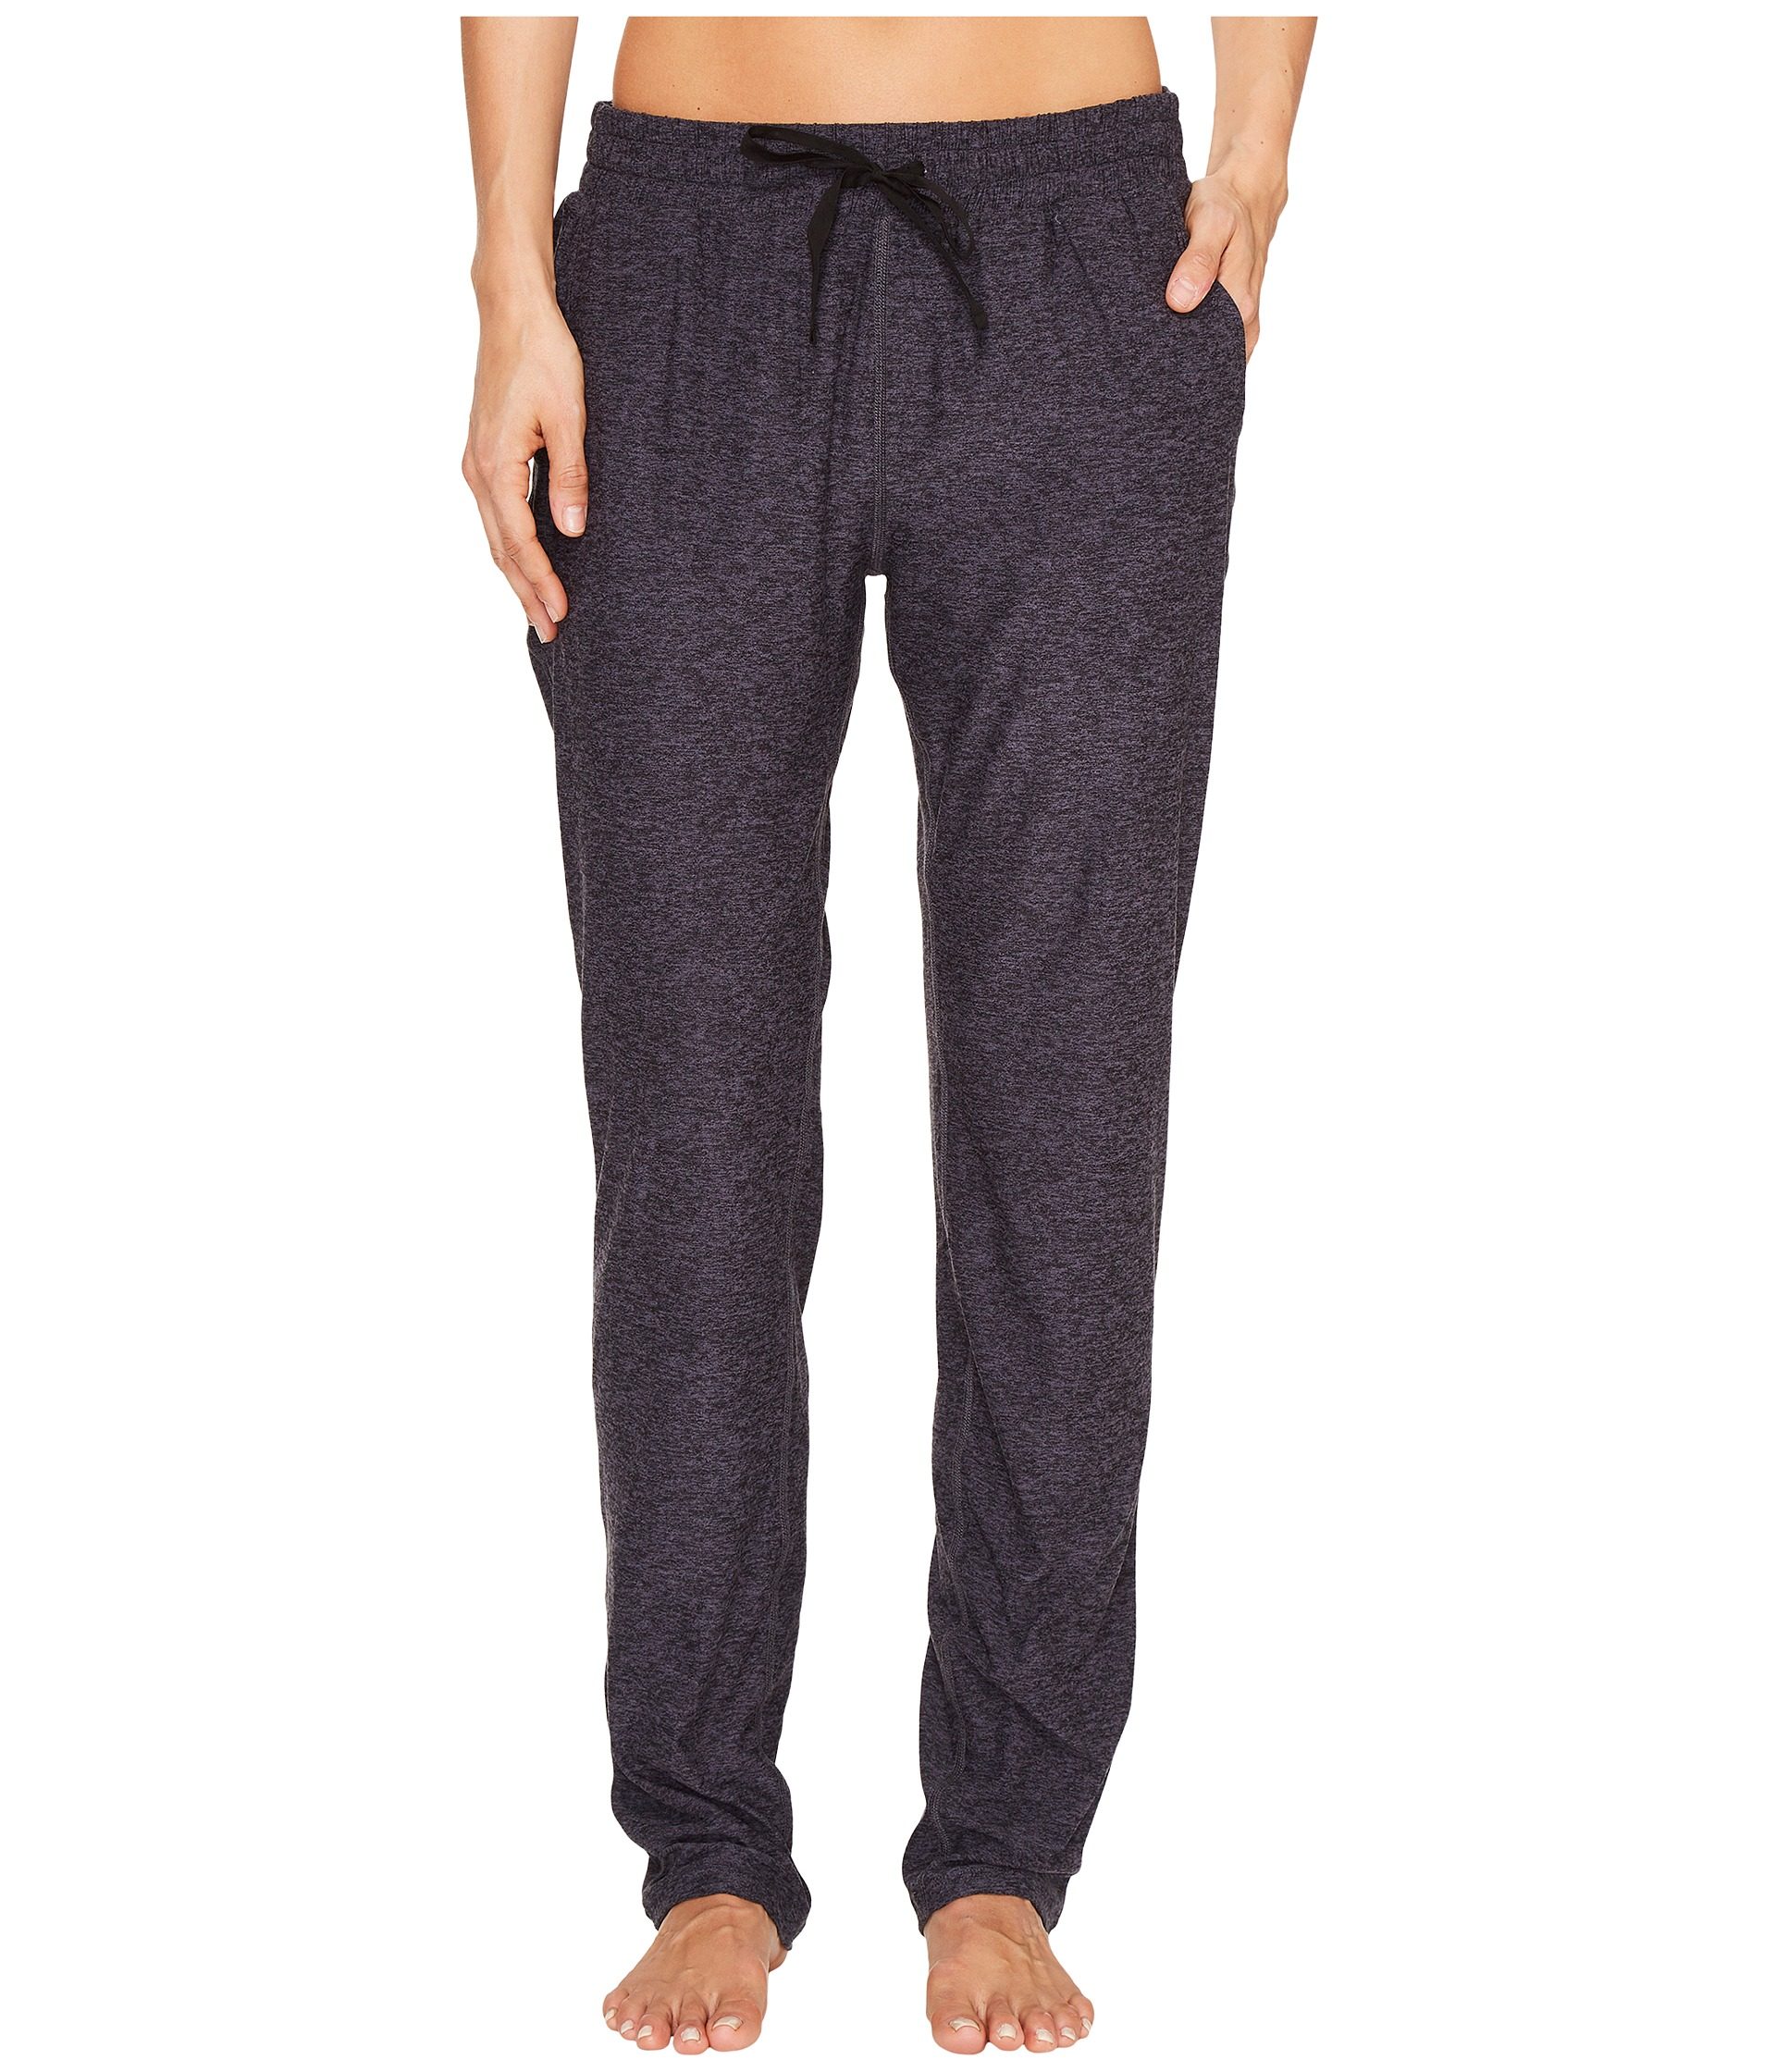 Beyond Yoga On The Run Jogger Pants At Zappos.com